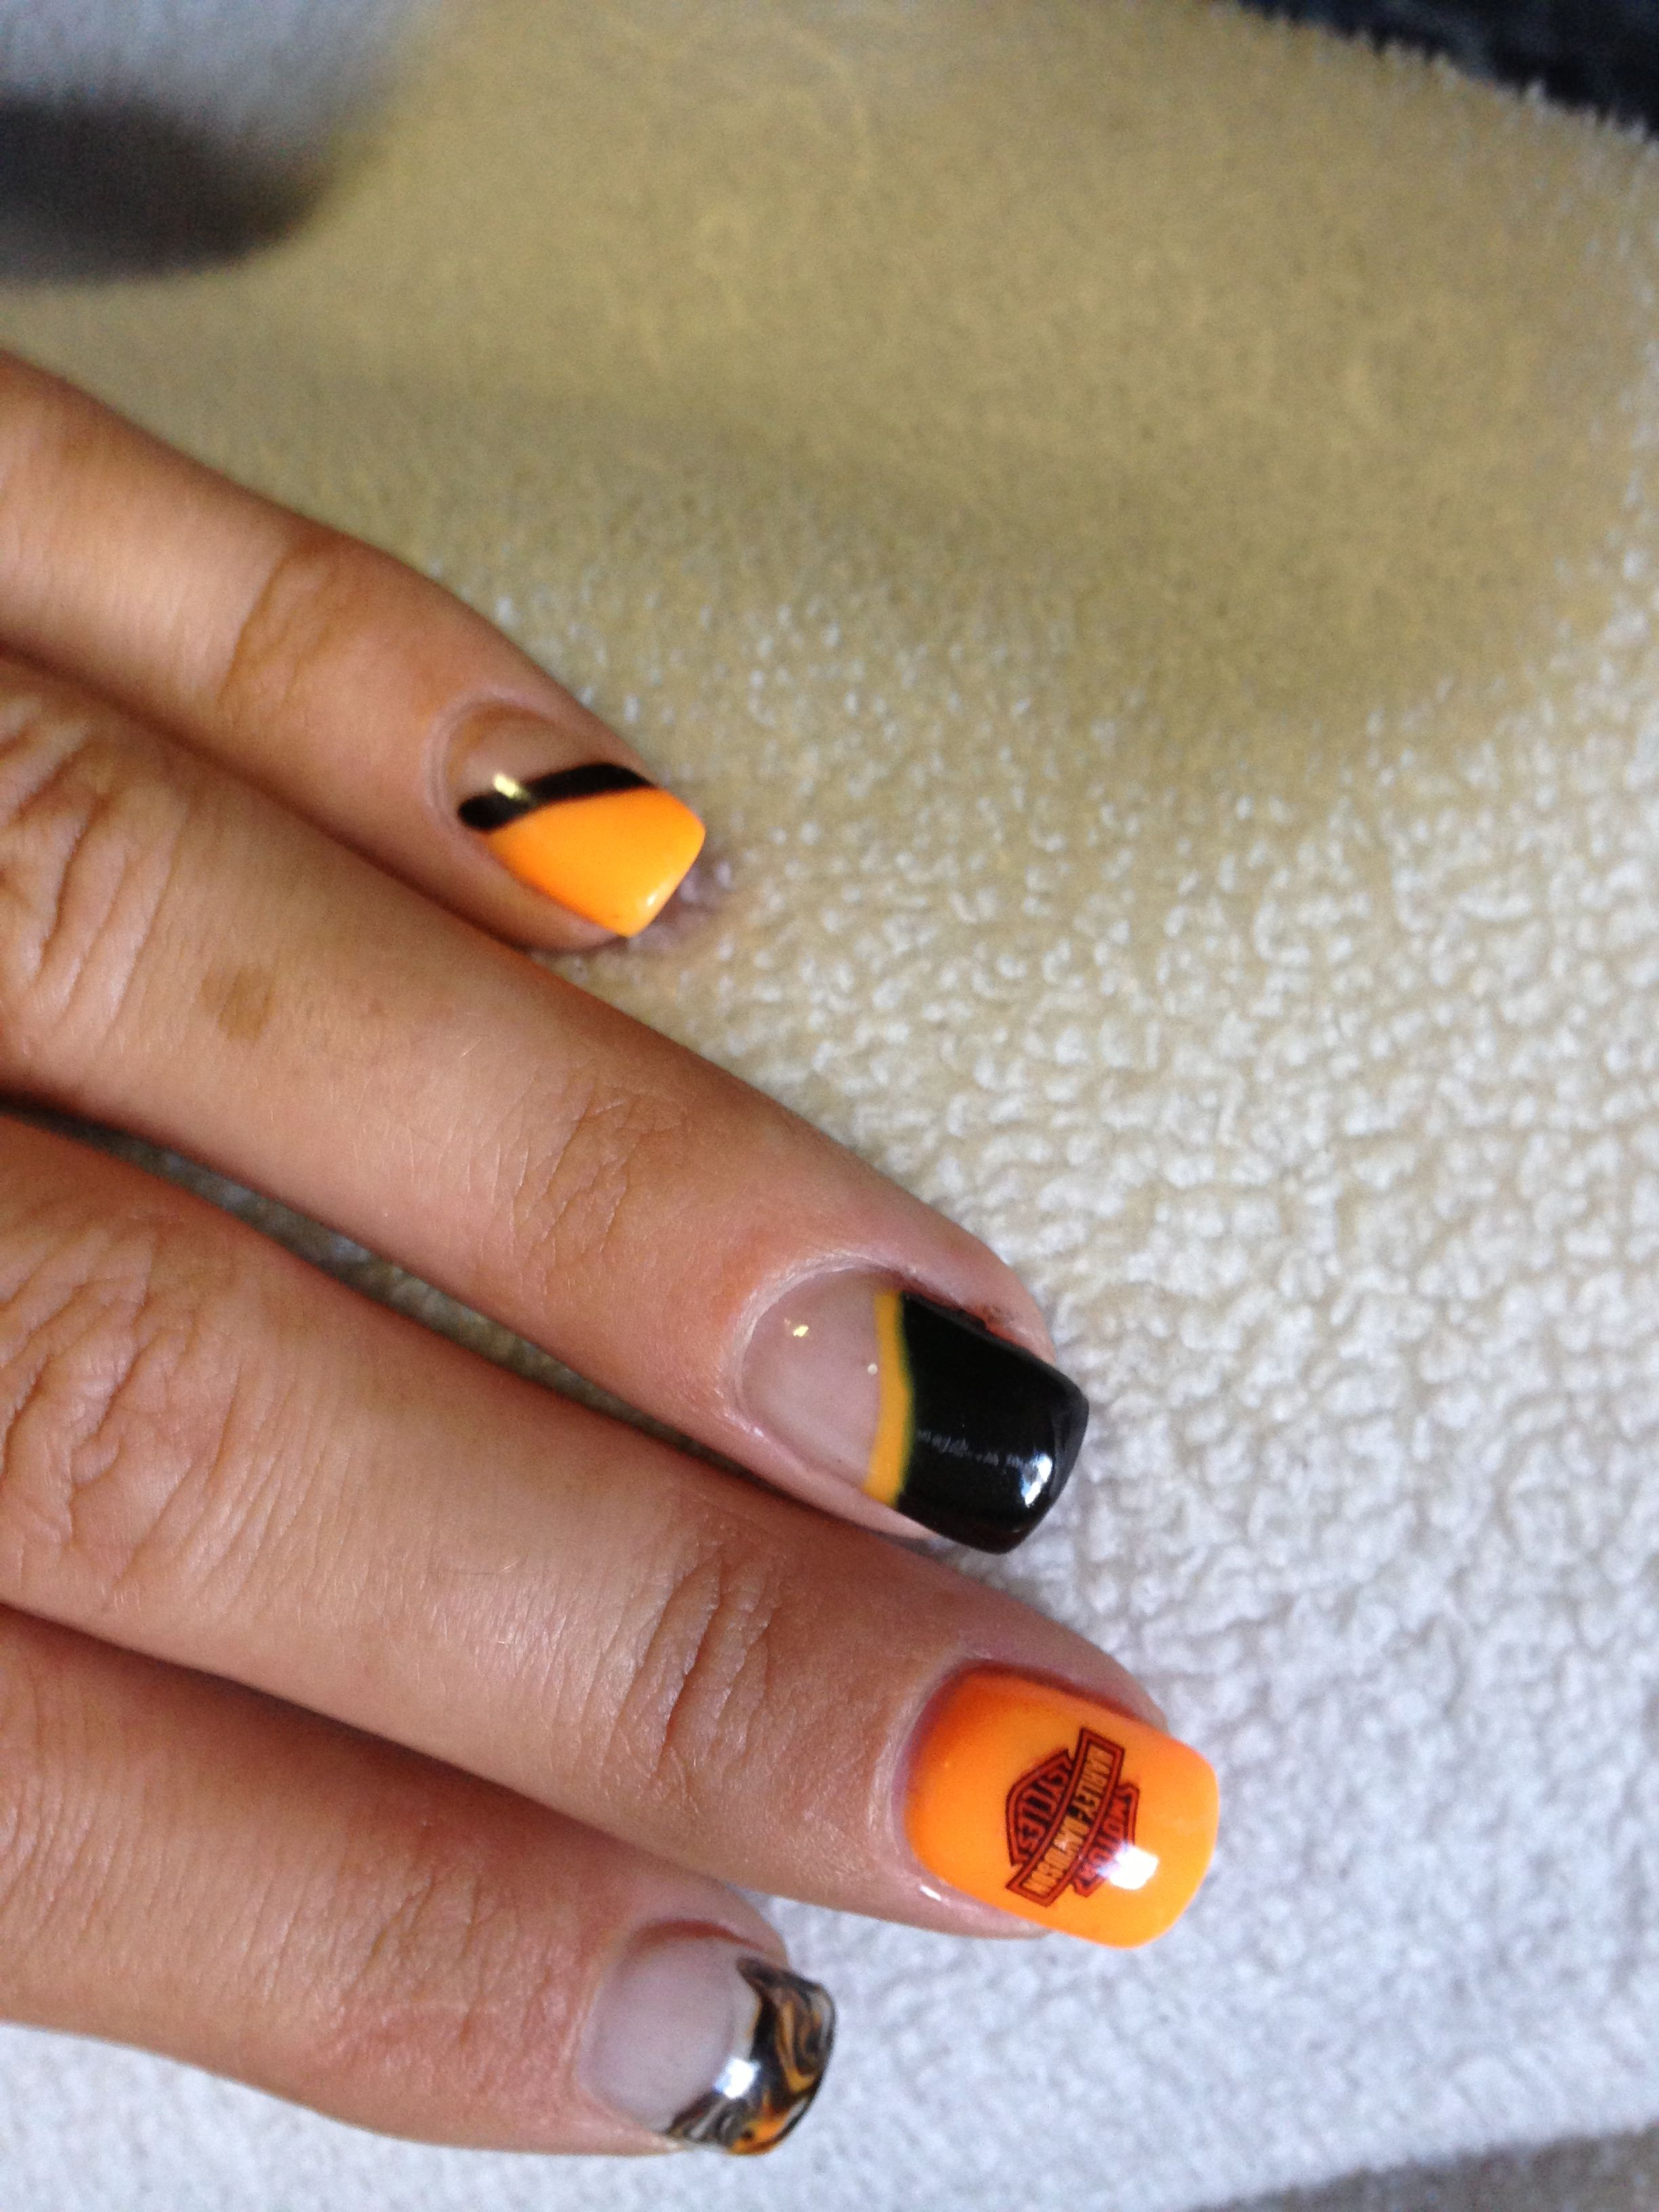 Pin By Bikerornot On Nails Nails Nails Now Toe Nails